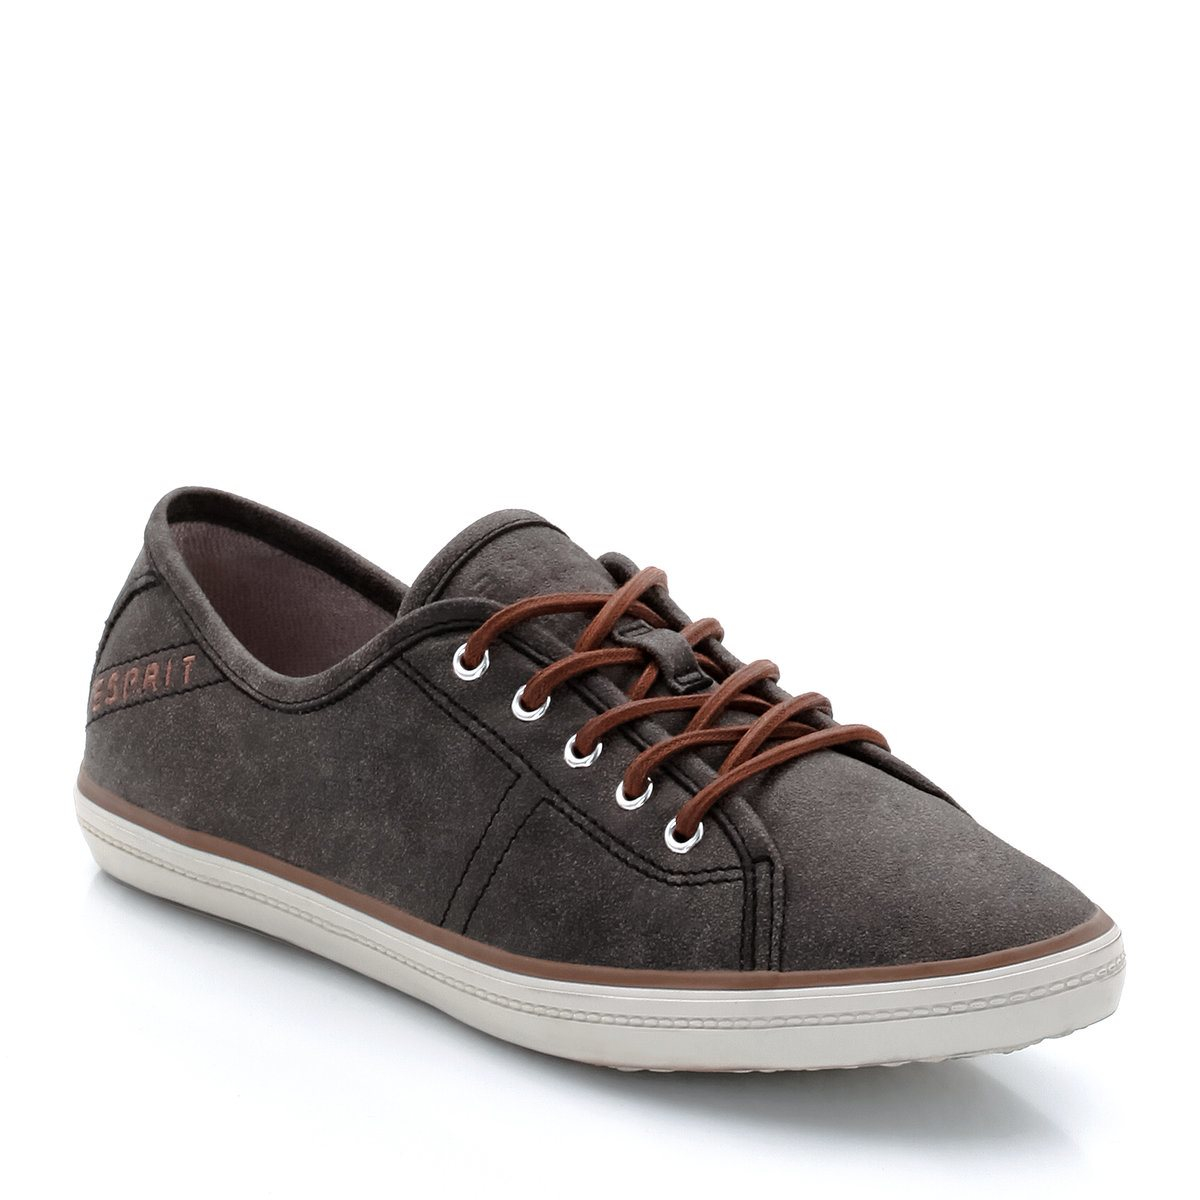 esprit matilda lace up low top trainers in gray lyst. Black Bedroom Furniture Sets. Home Design Ideas